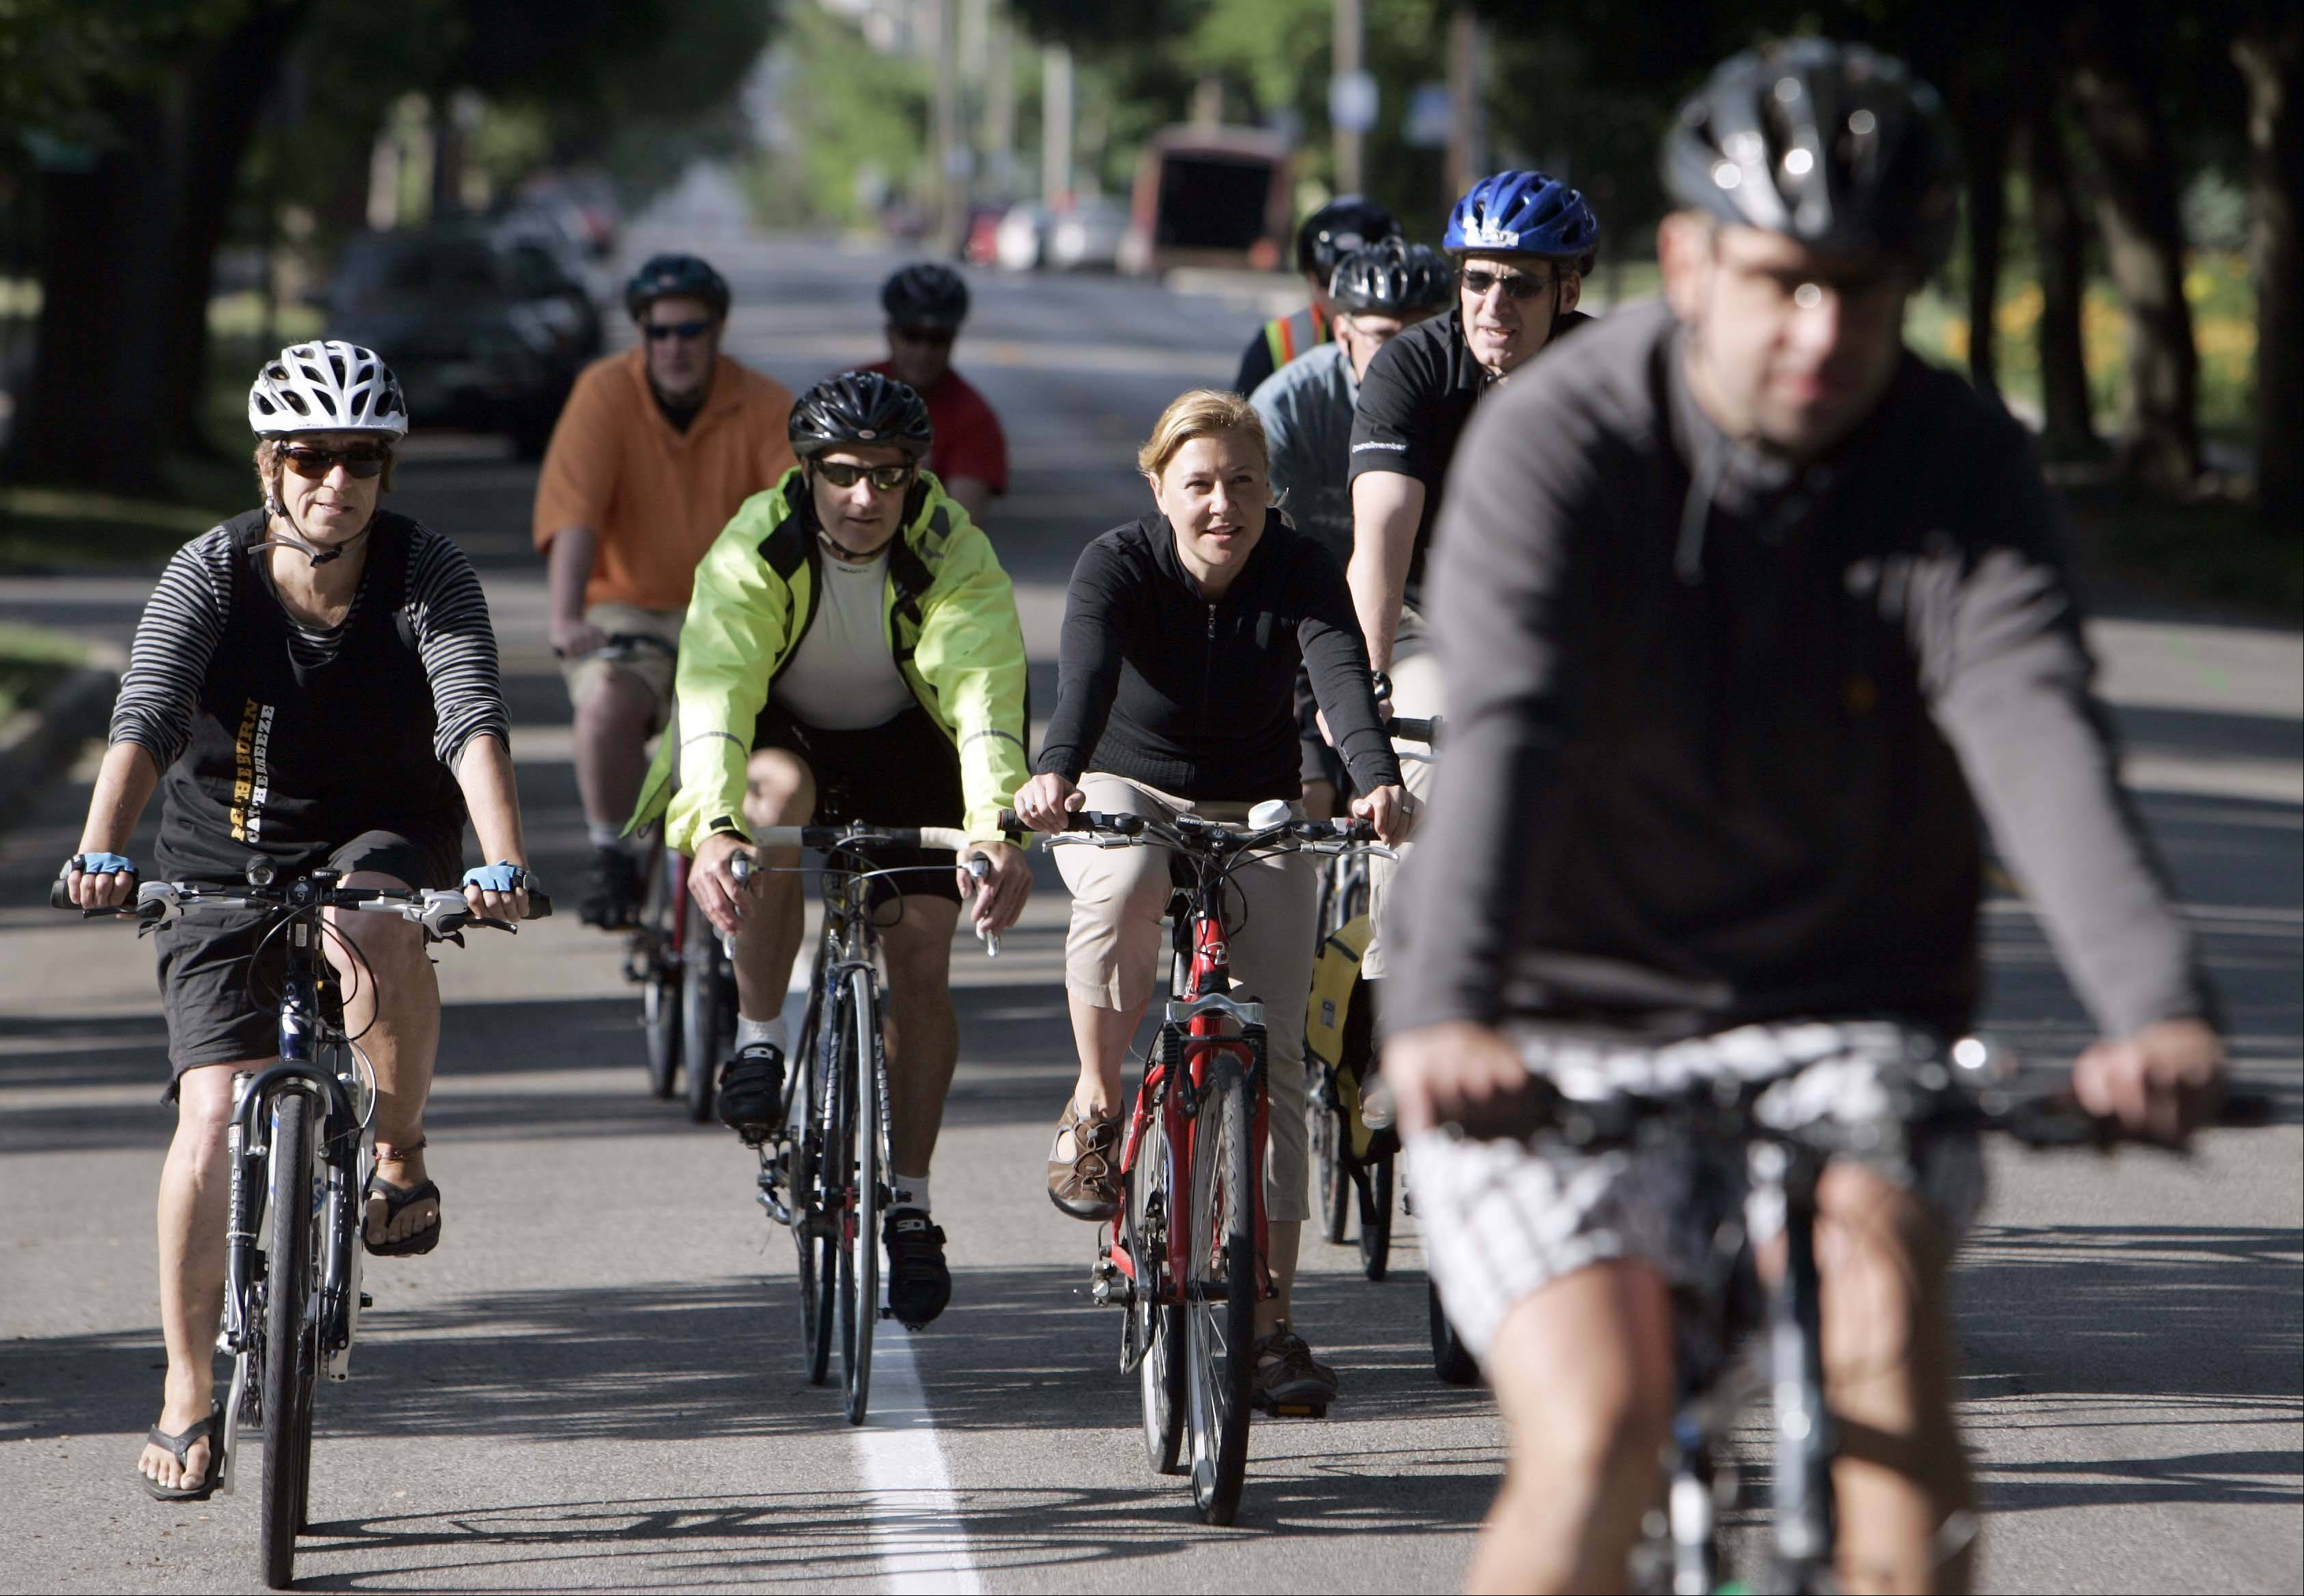 Barb Broeske of Elgin, left, Ron Rudd of West Dundee, Elgin City Councilwoman Anna Moeller of Elgin, and Elgin City Council member John Steffen join the pack during Elgin's Bike To Work Week and breakfast ride Thursday.